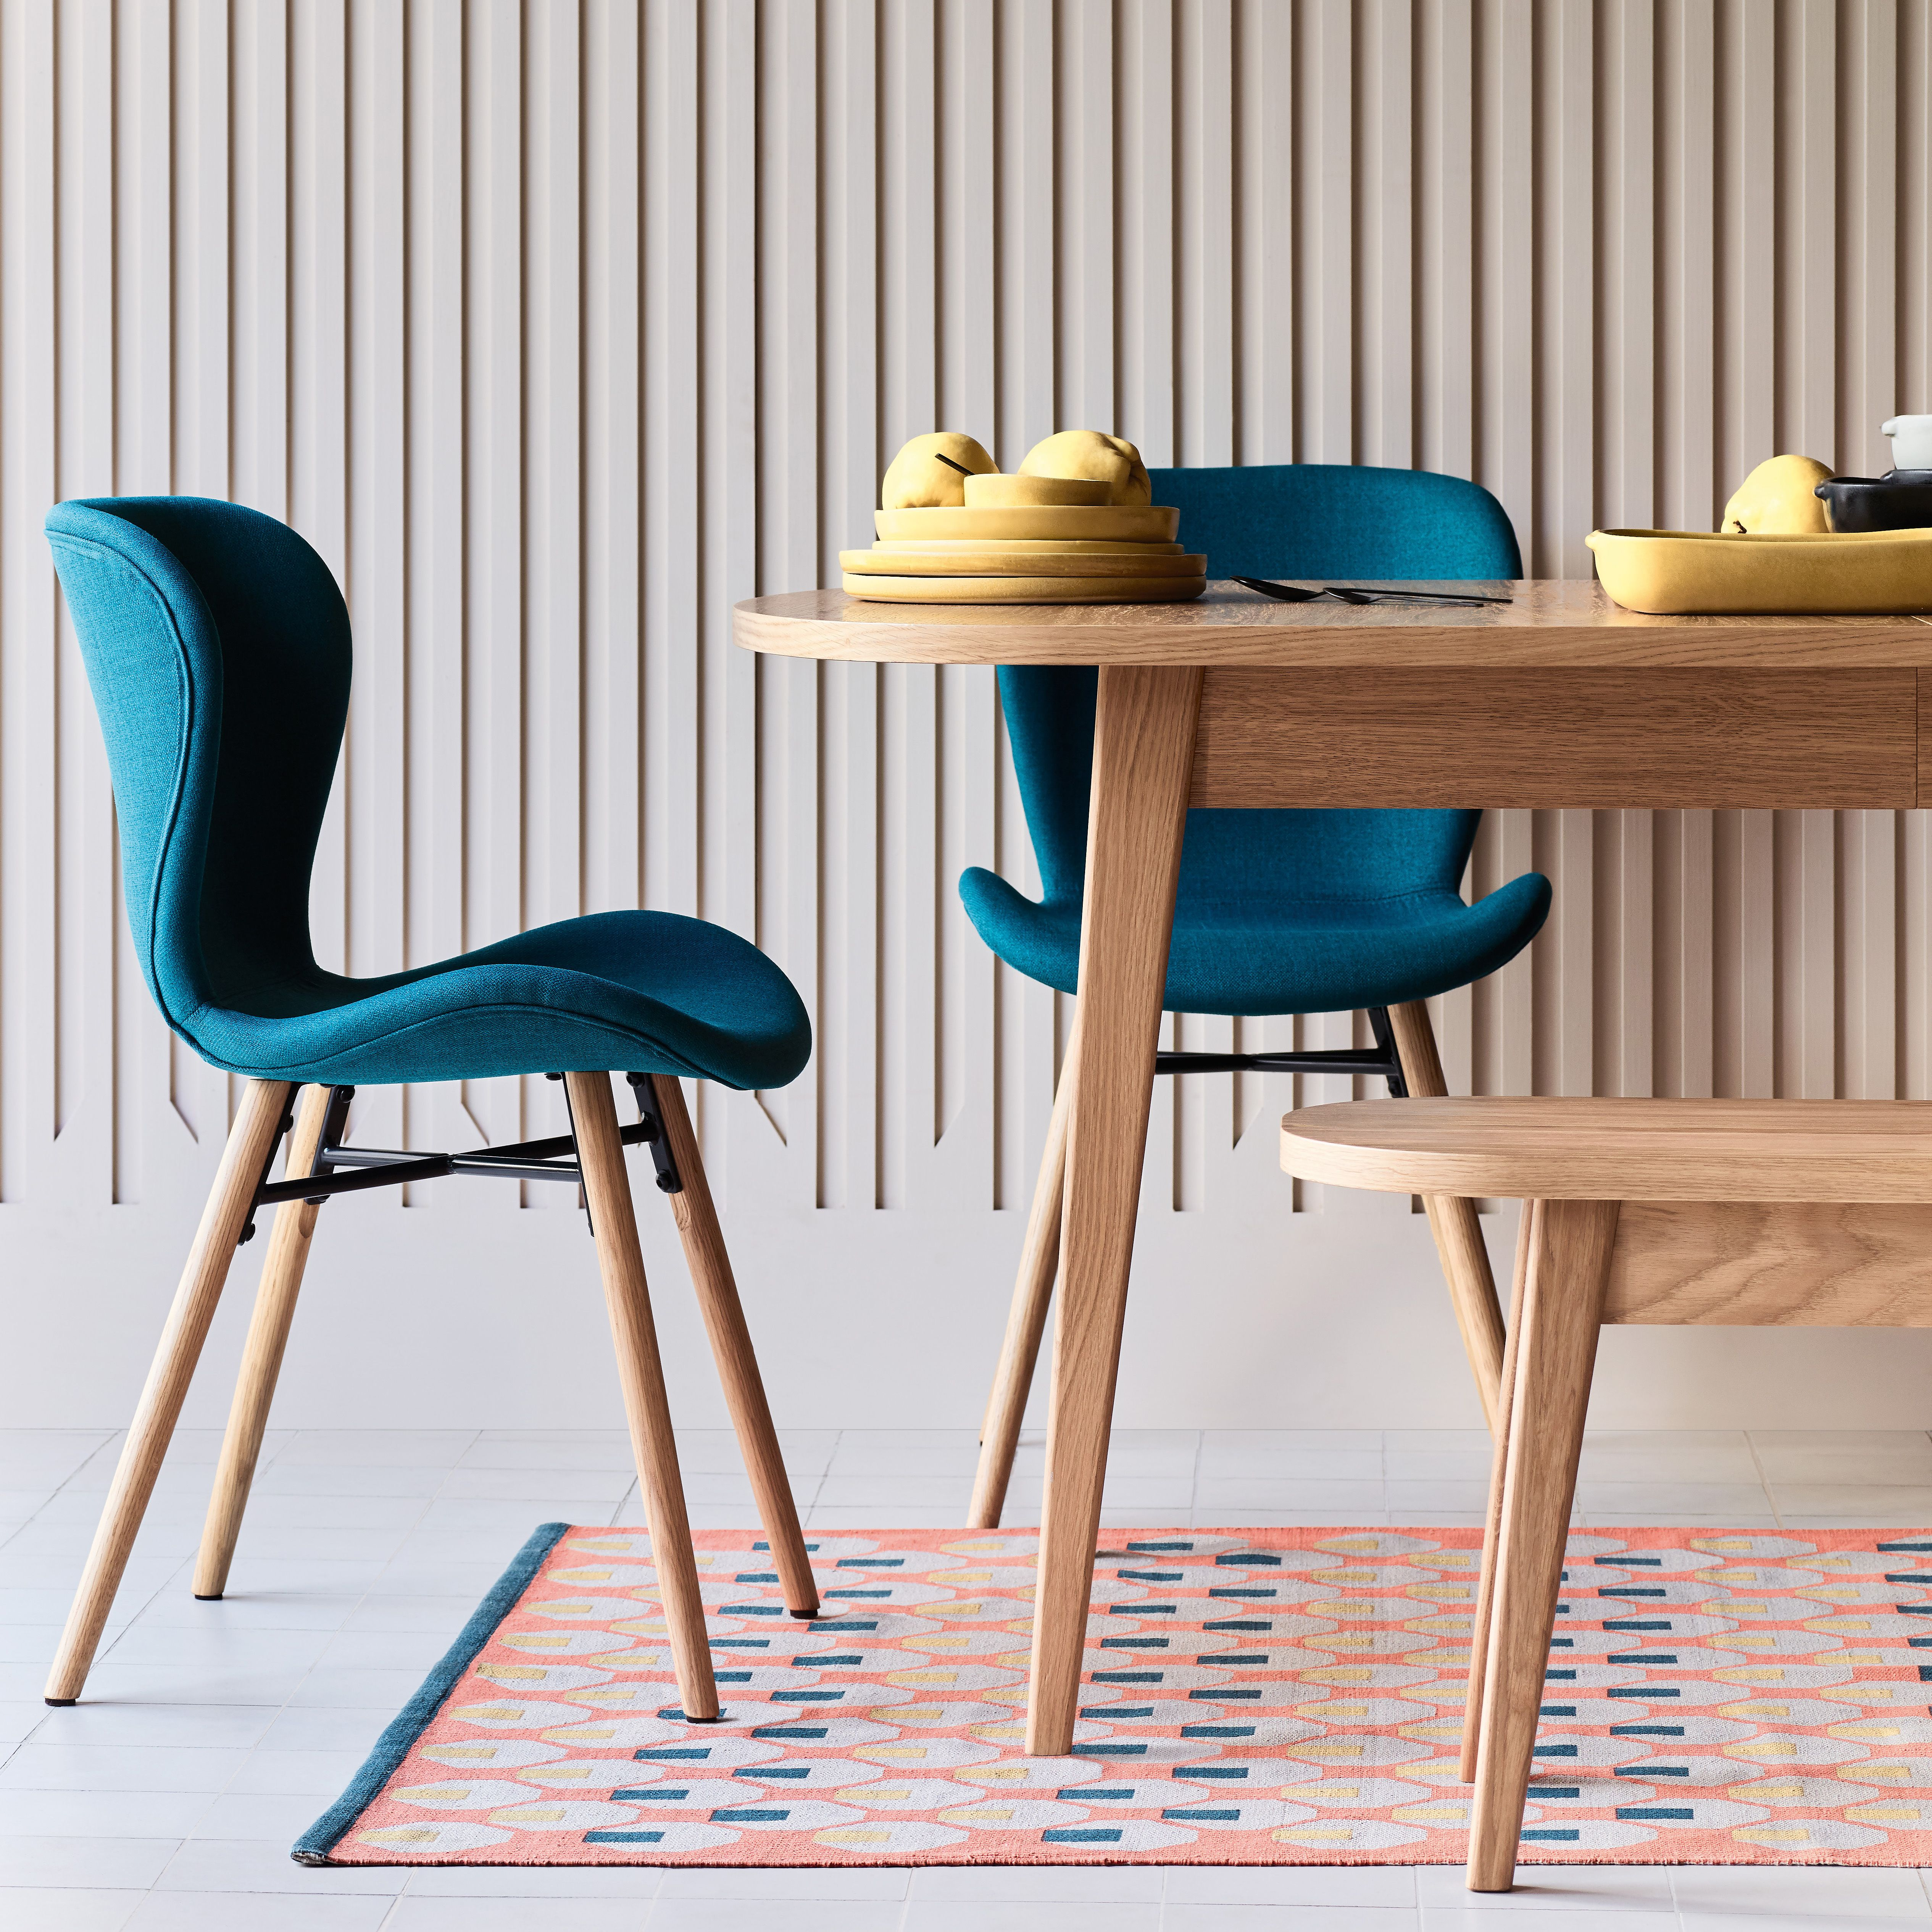 Etta chair pair of teal blue upholstered dining chairs